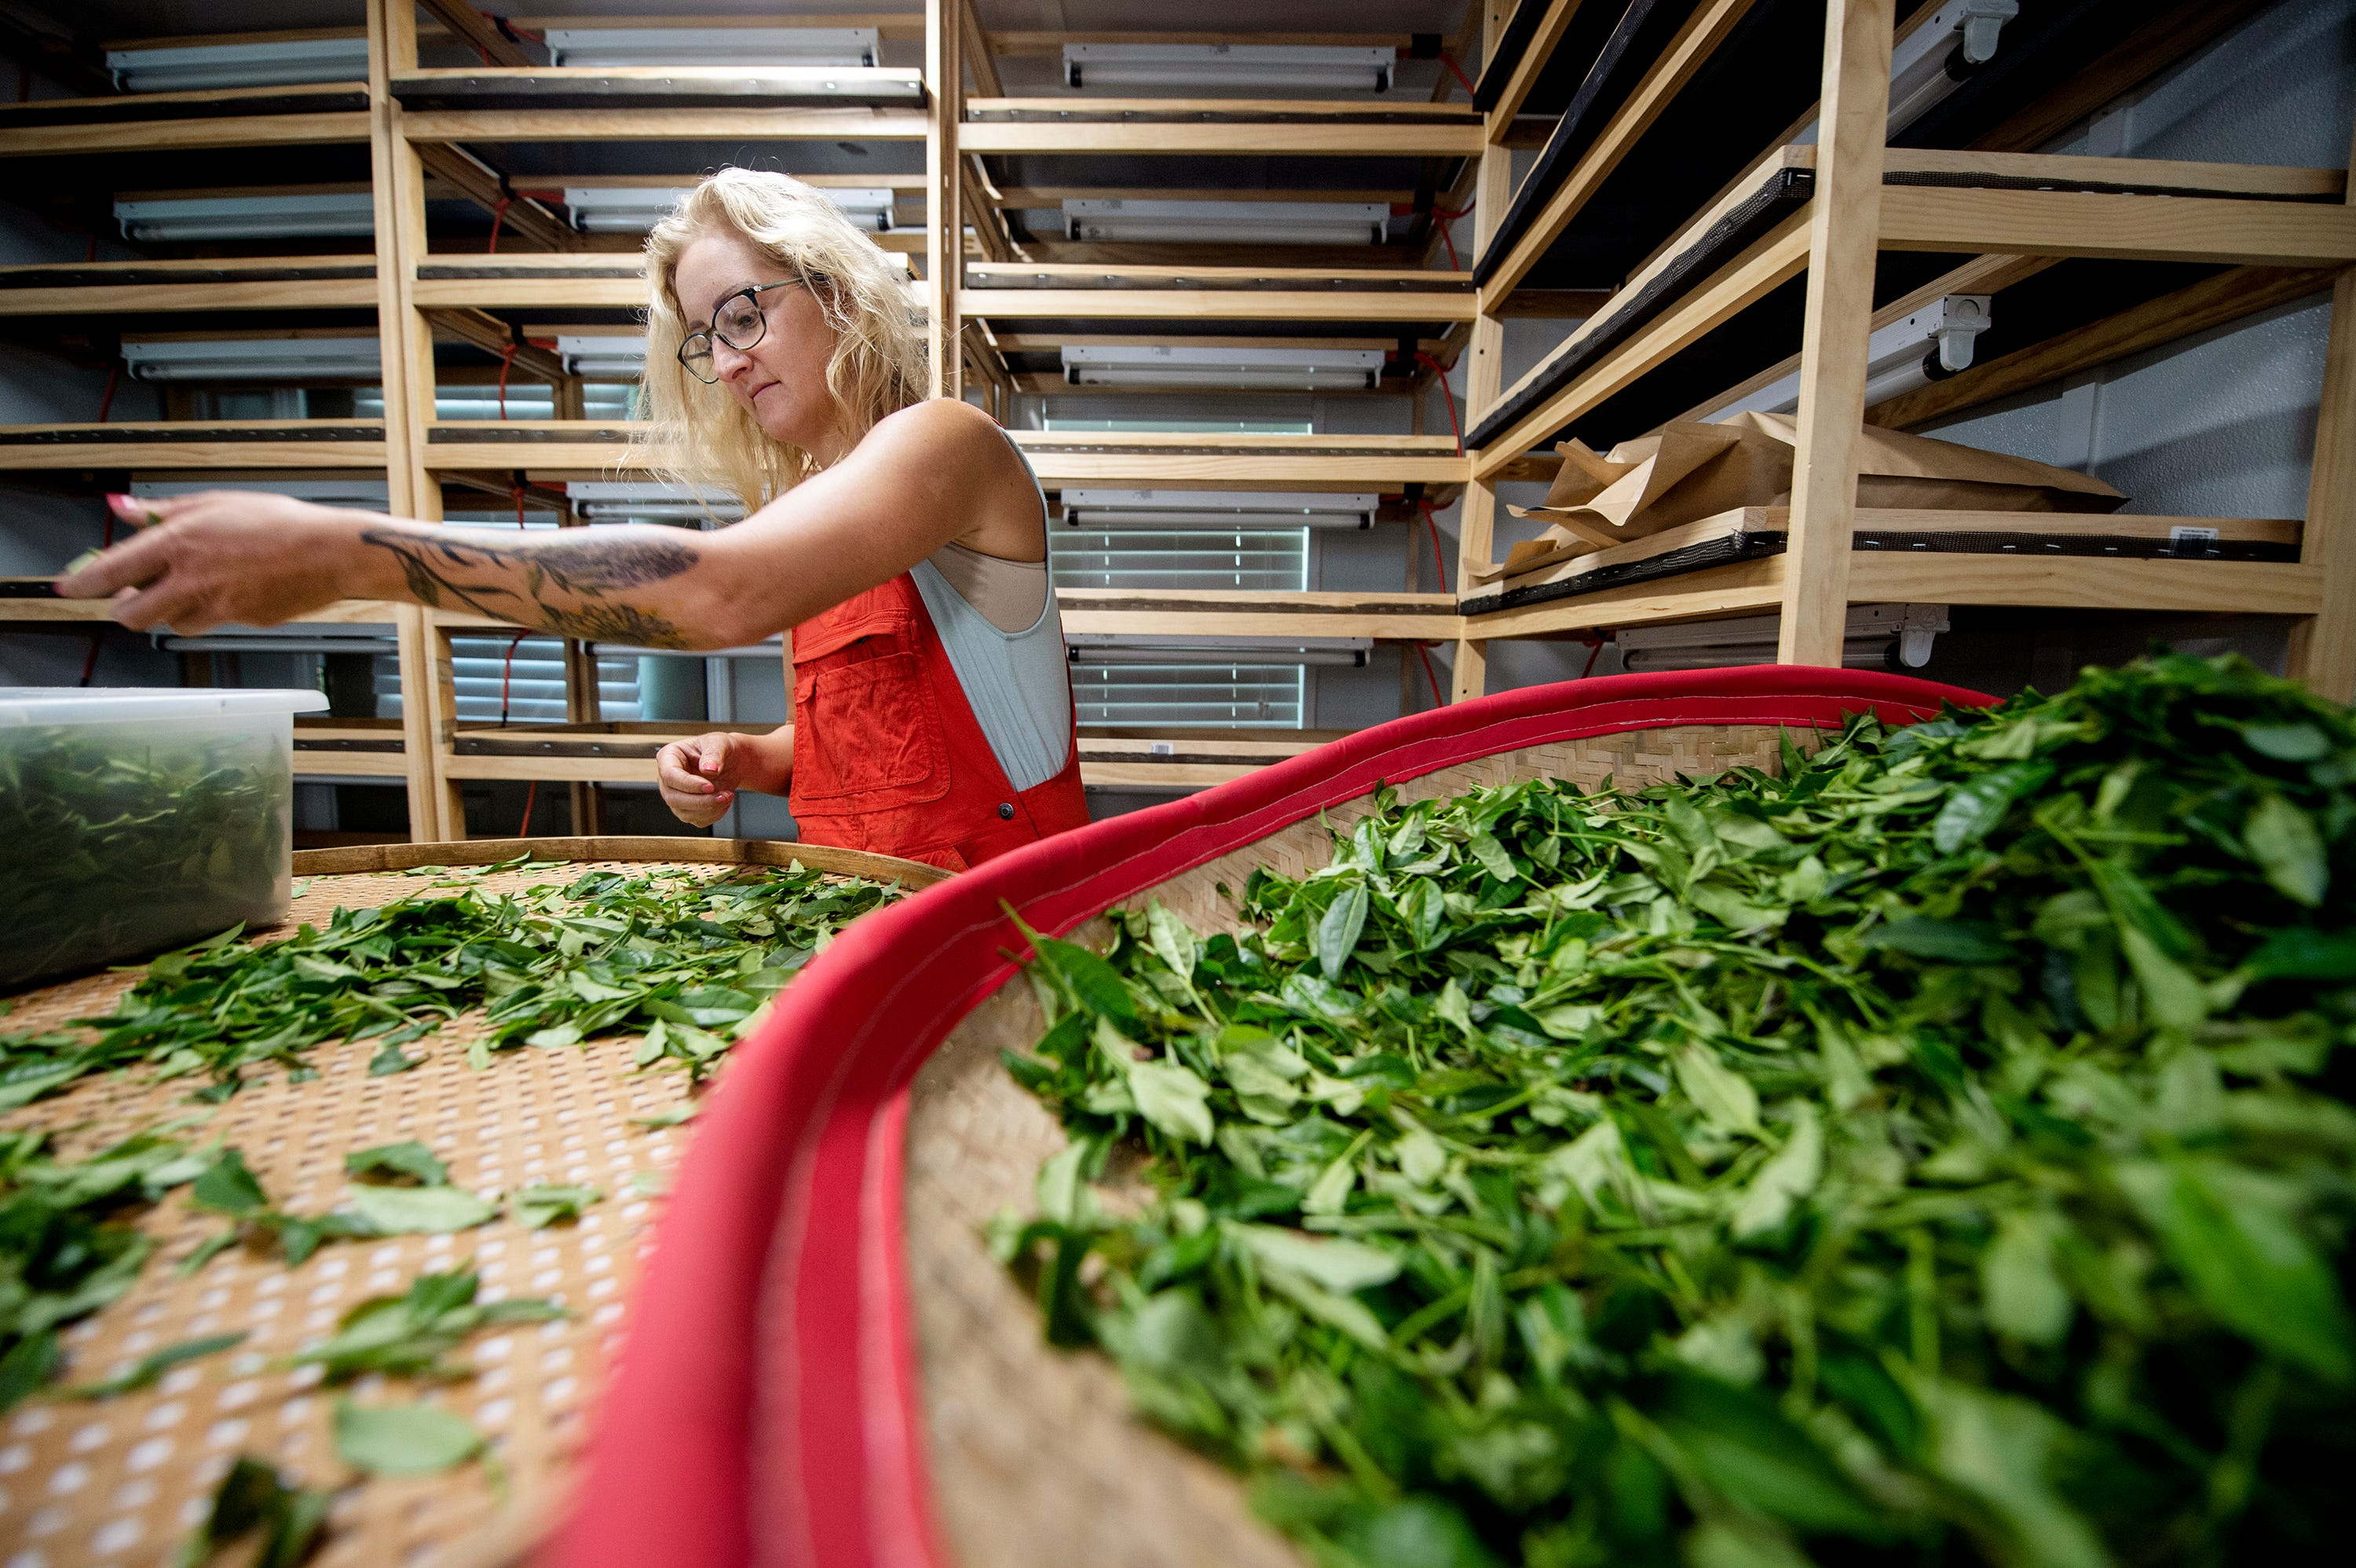 Sagan King, an employee of The Great Mississippi Tea Company, sorts through green tea in a production room at the company's farm in Brookhaven, Miss., Thursday, July 29, 2021.